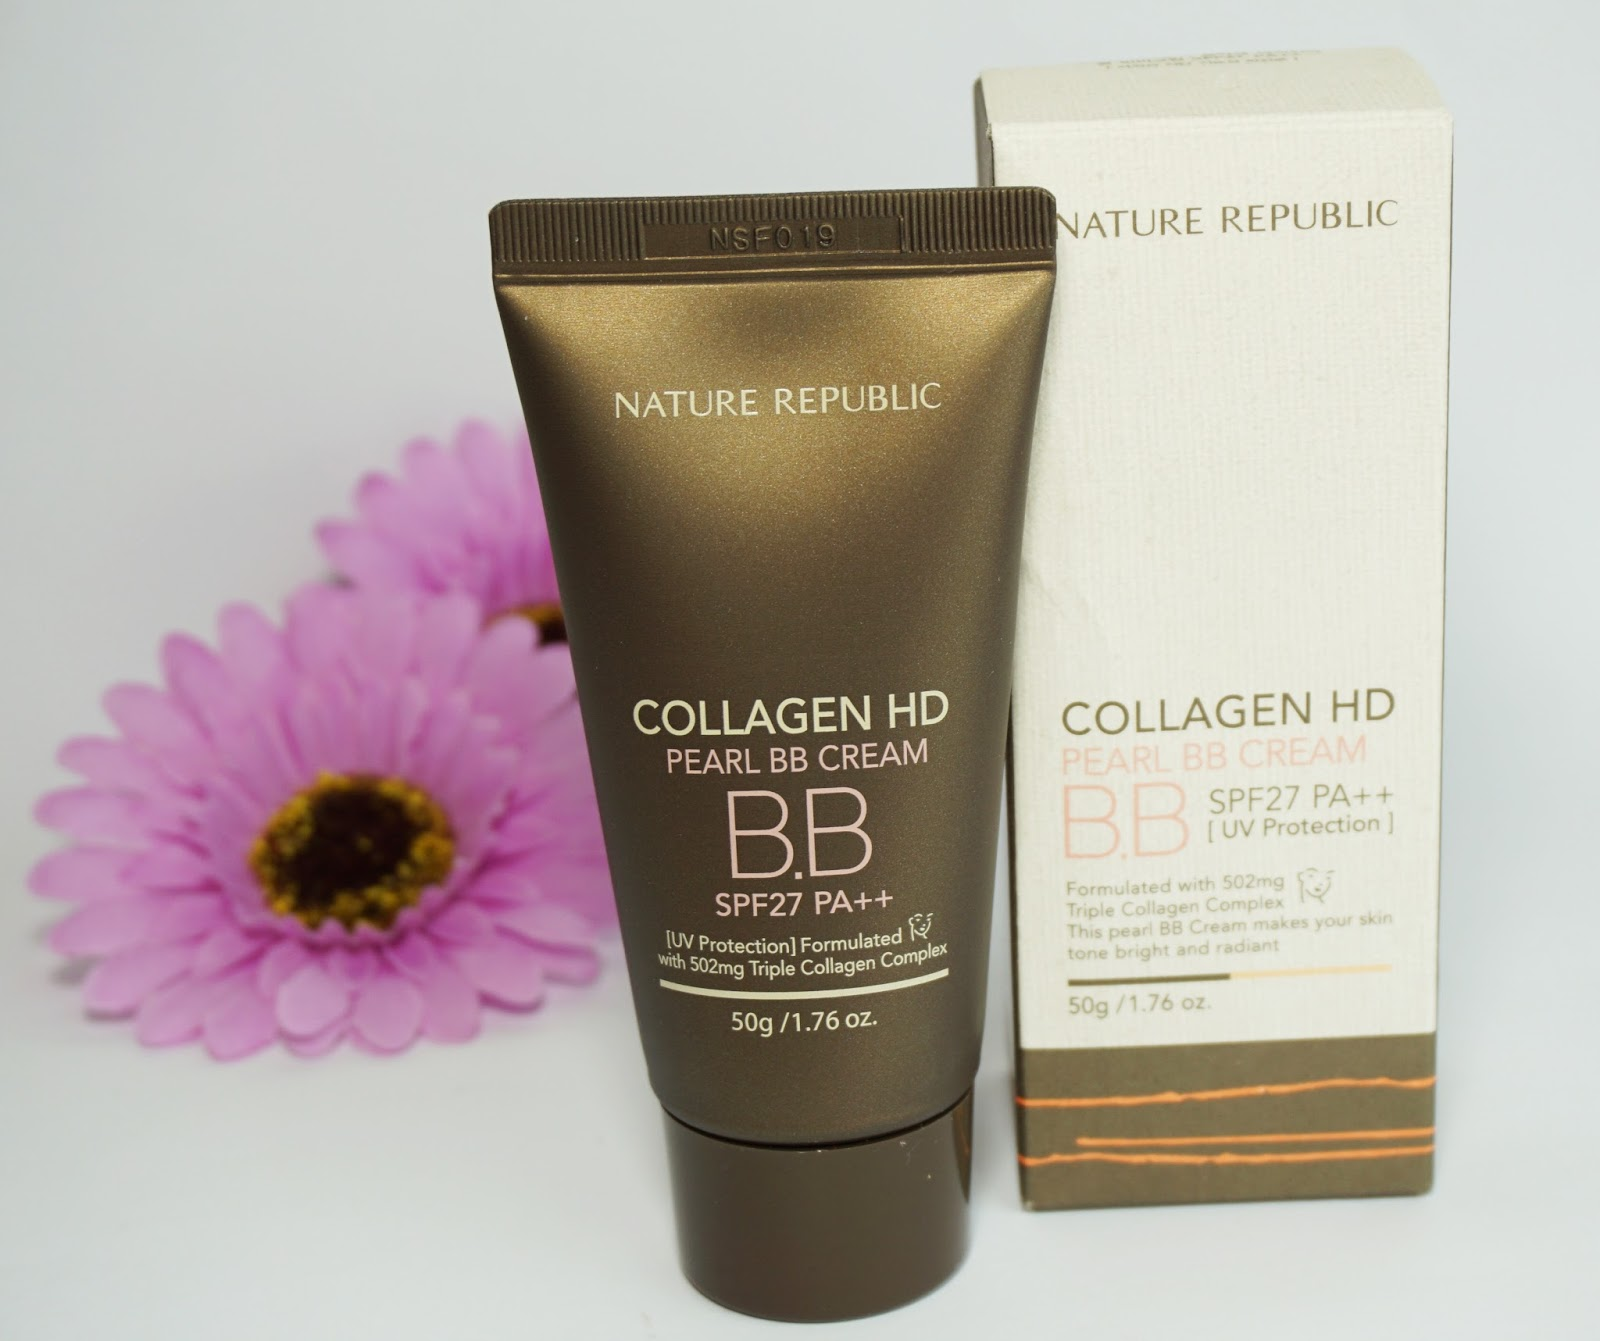 Nature Republic - Collagen HD Pearl BB Cream